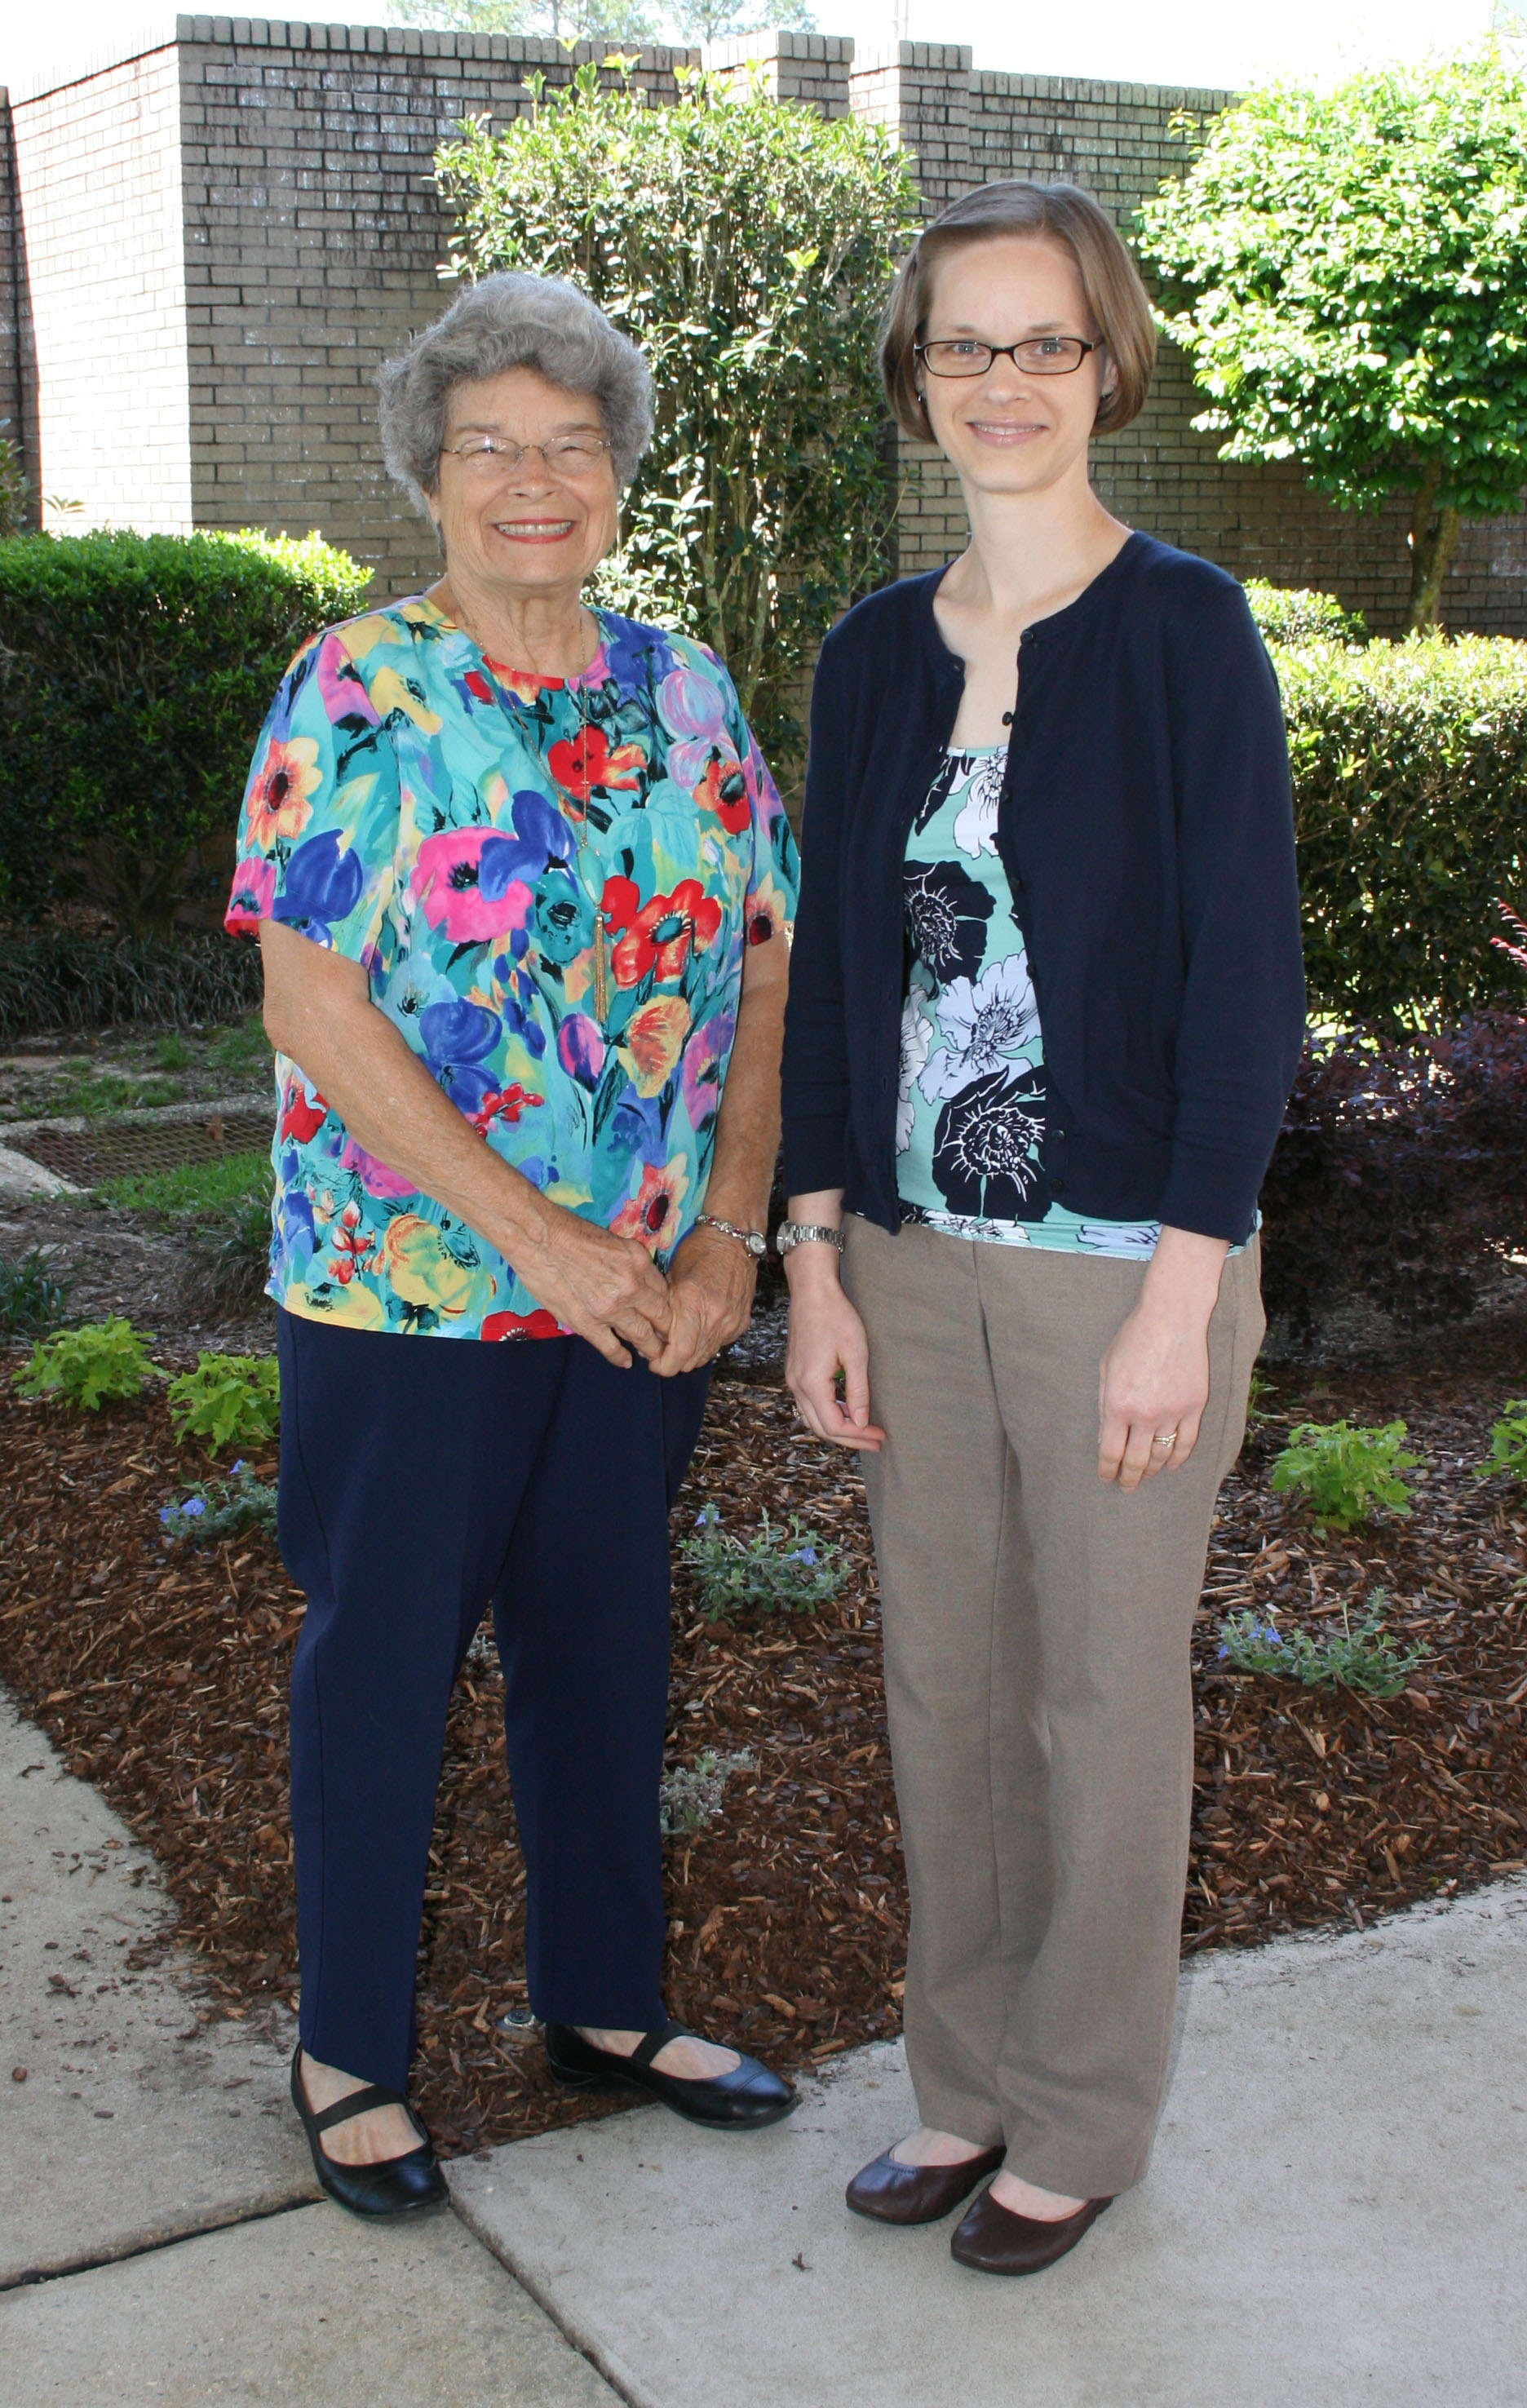 Baldwin EMC retiree Lois Schneider sits down with employee Jessica Johnson